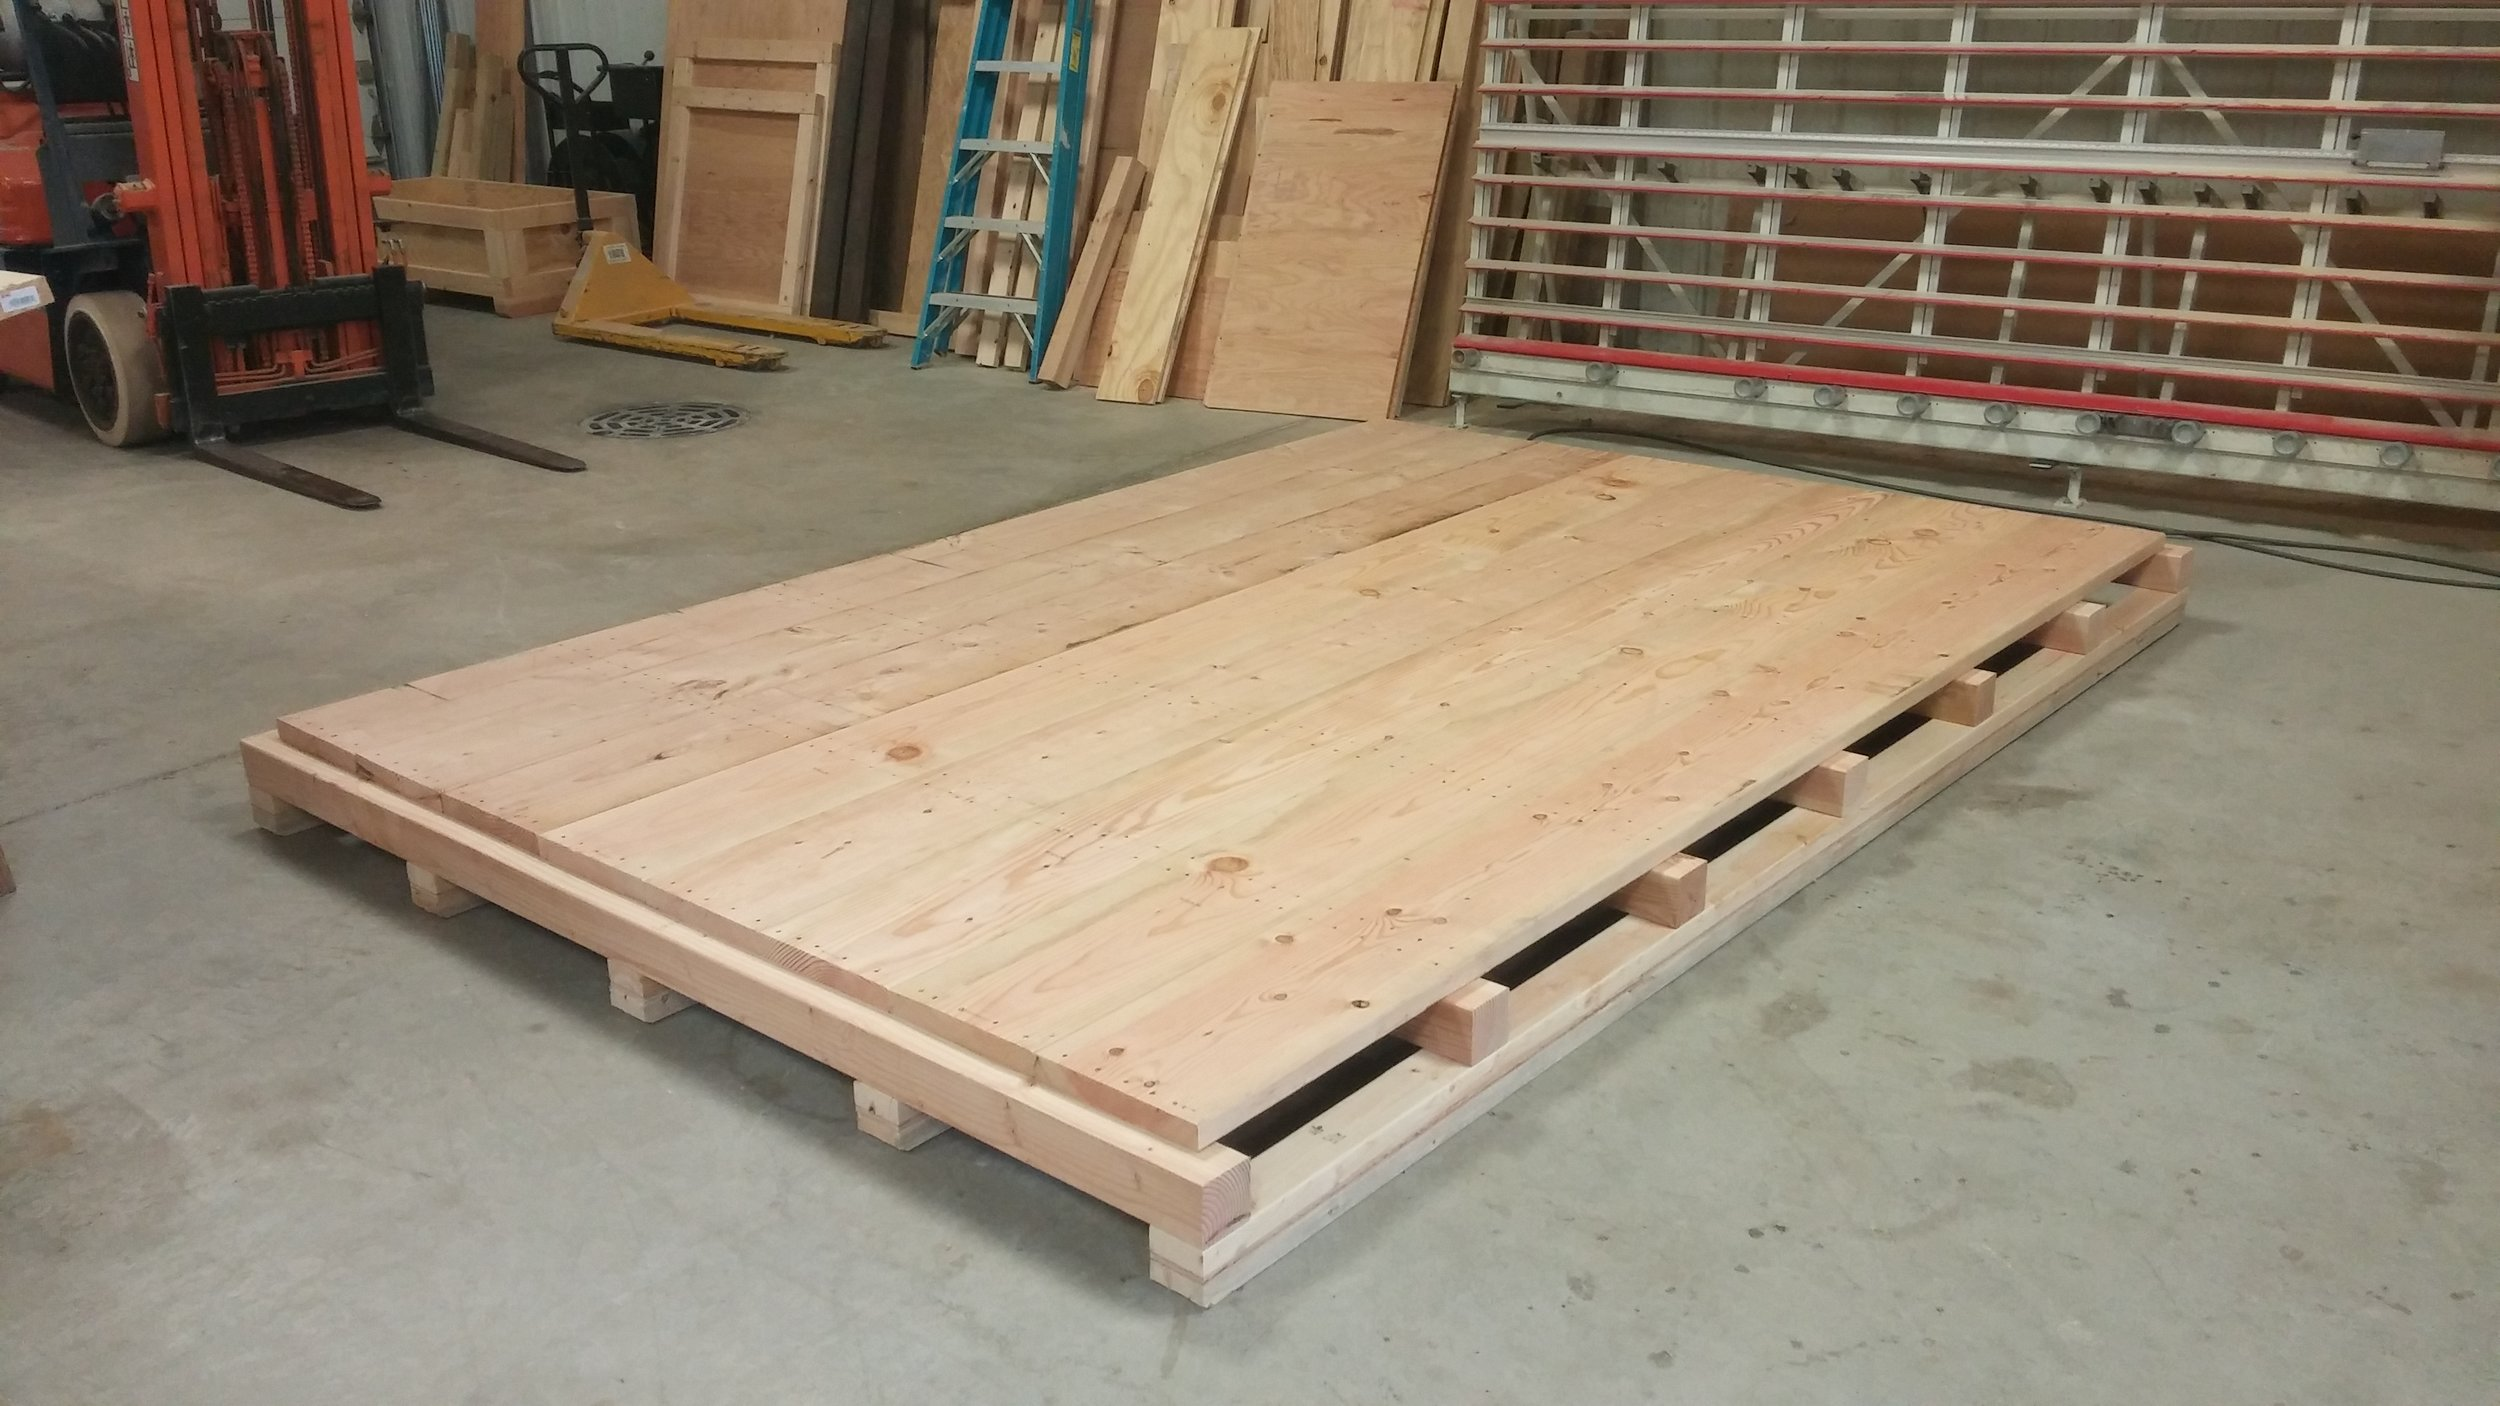 """Our Strong crate Decks - are made with : 1-1/2"""" thick 2x12 (as shown),3/4"""" ply is our preferred minimumDouble 3/4"""" Ply (1-1/2"""" Thick) works great.Depending on your load, the crate's deck construction is probably the most critical decision made when designing a crate.Make it strong = No worries."""